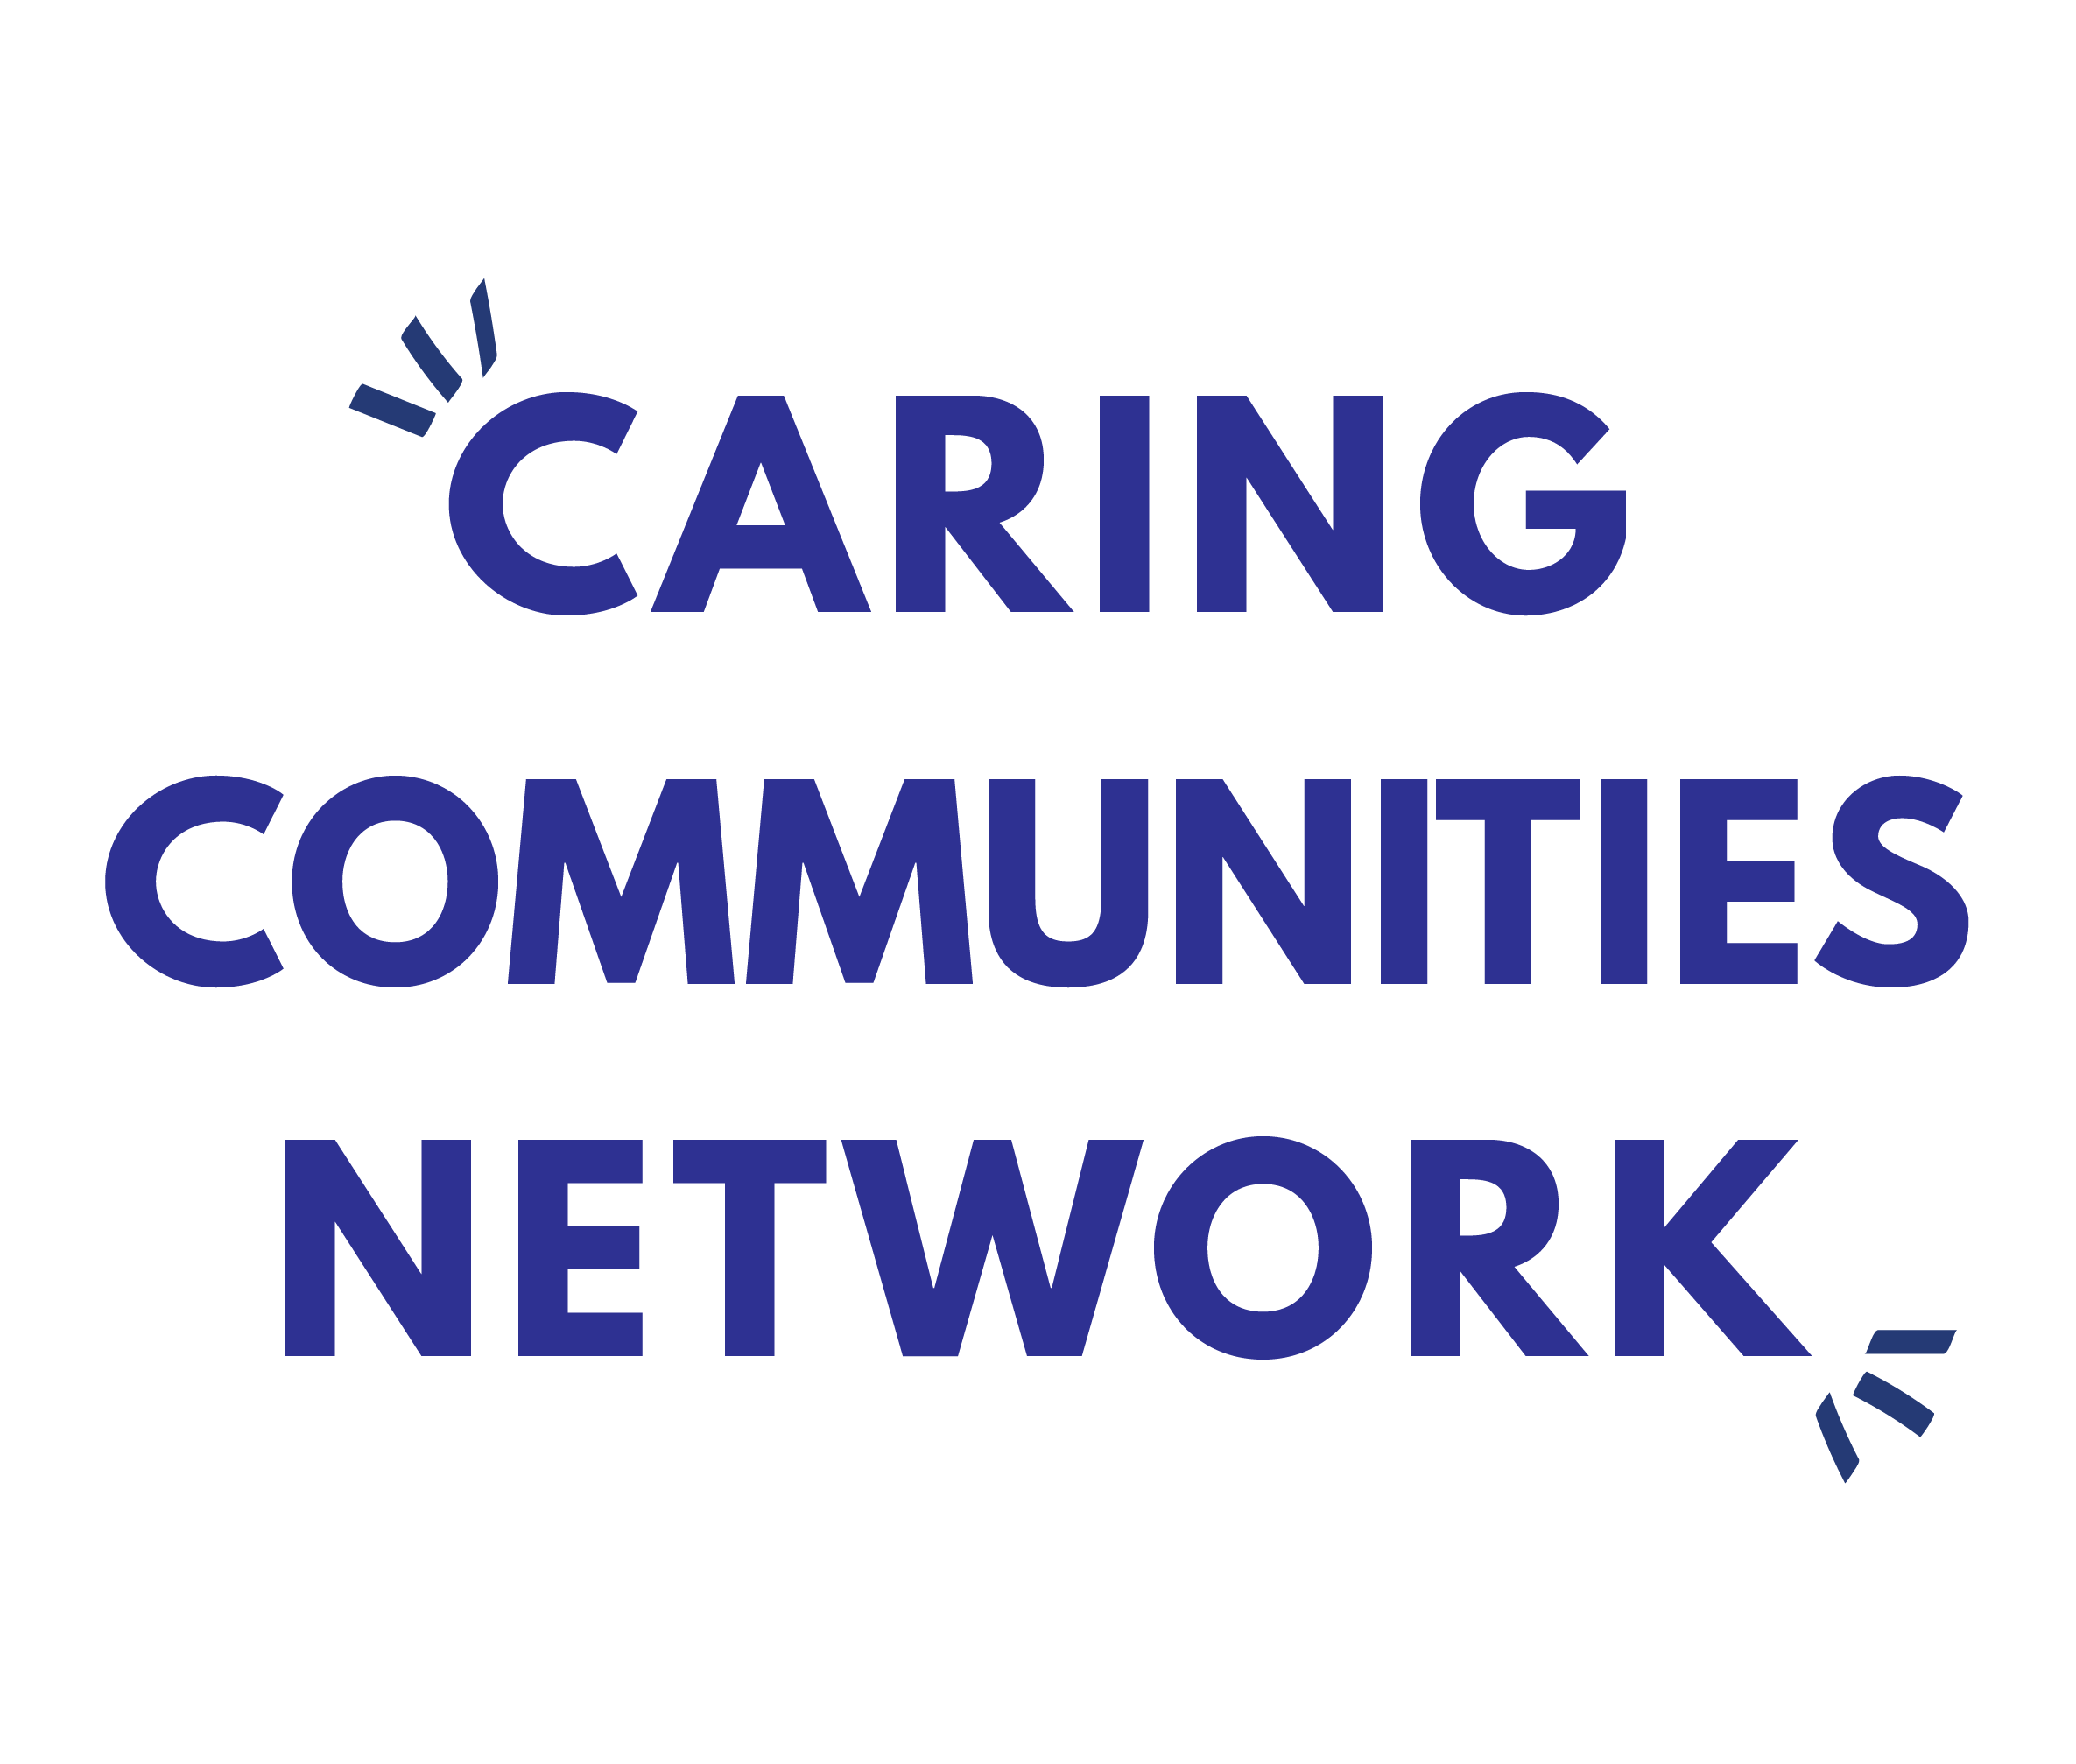 Caring Communities Network